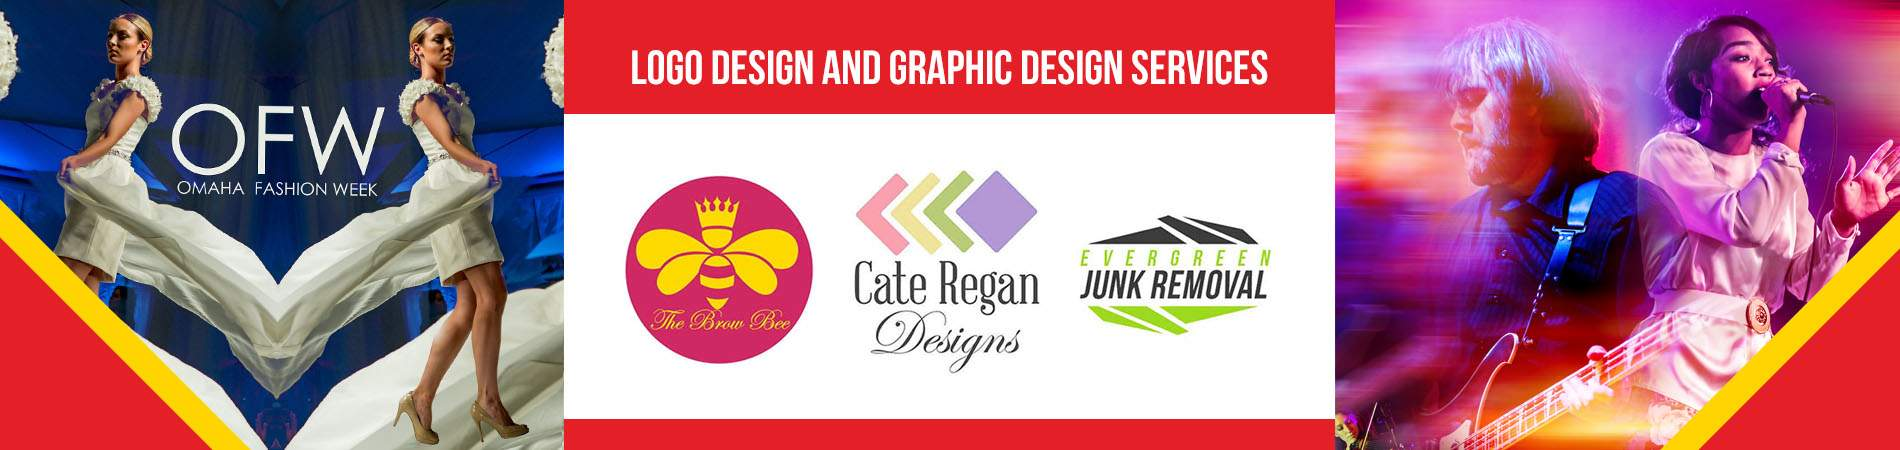 Logo Design Services and Graphic Design Services